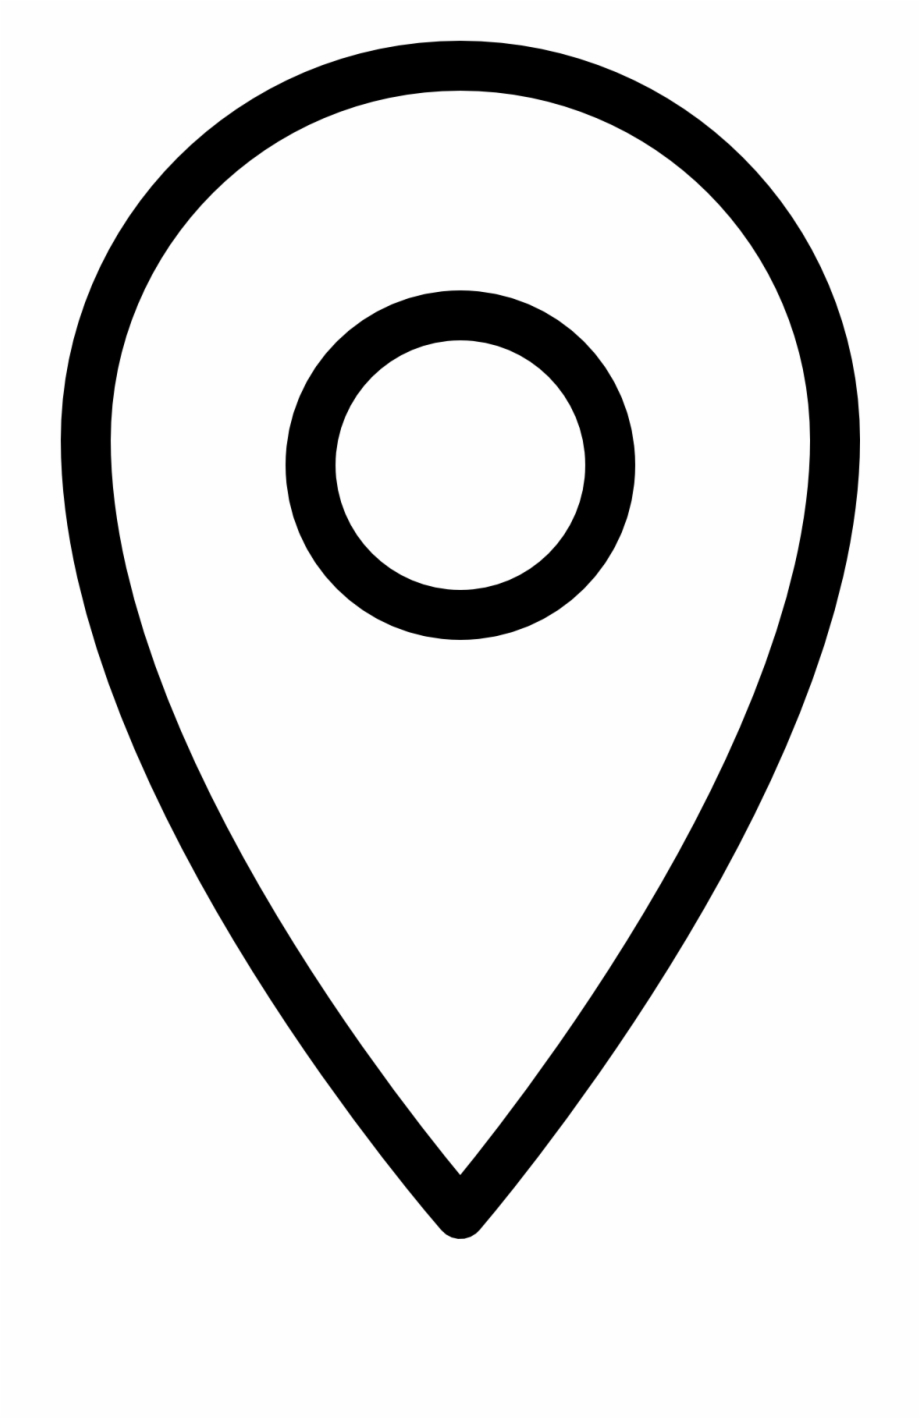 Location icon clipart free download image free library Location Icon Png White Free PNG Images & Clipart Download #8043 ... image free library